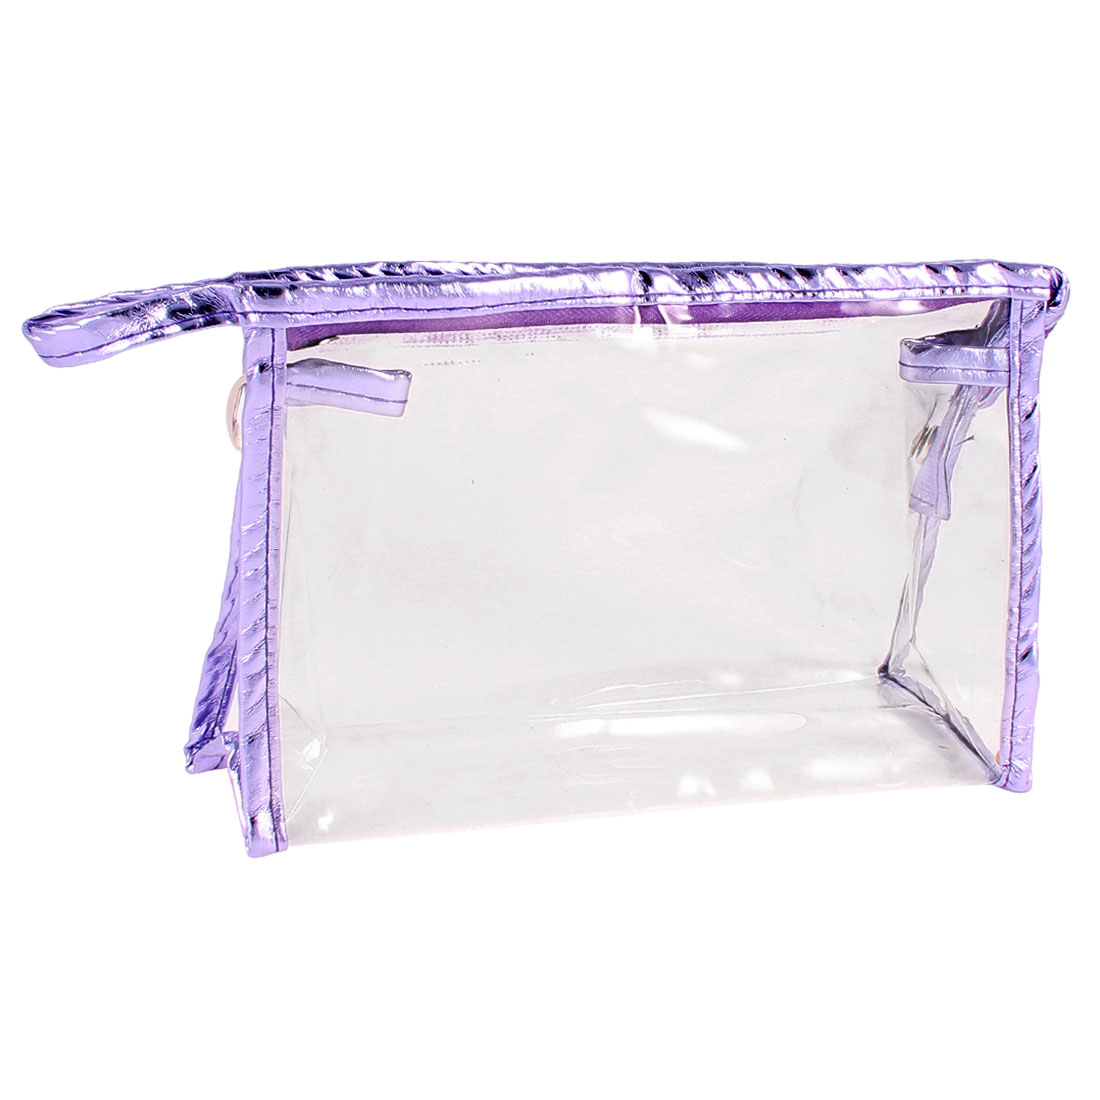 Zippered Purple Faux Leather Border Transparent Make up Storage Case Bag 27cmx8cmx16cm